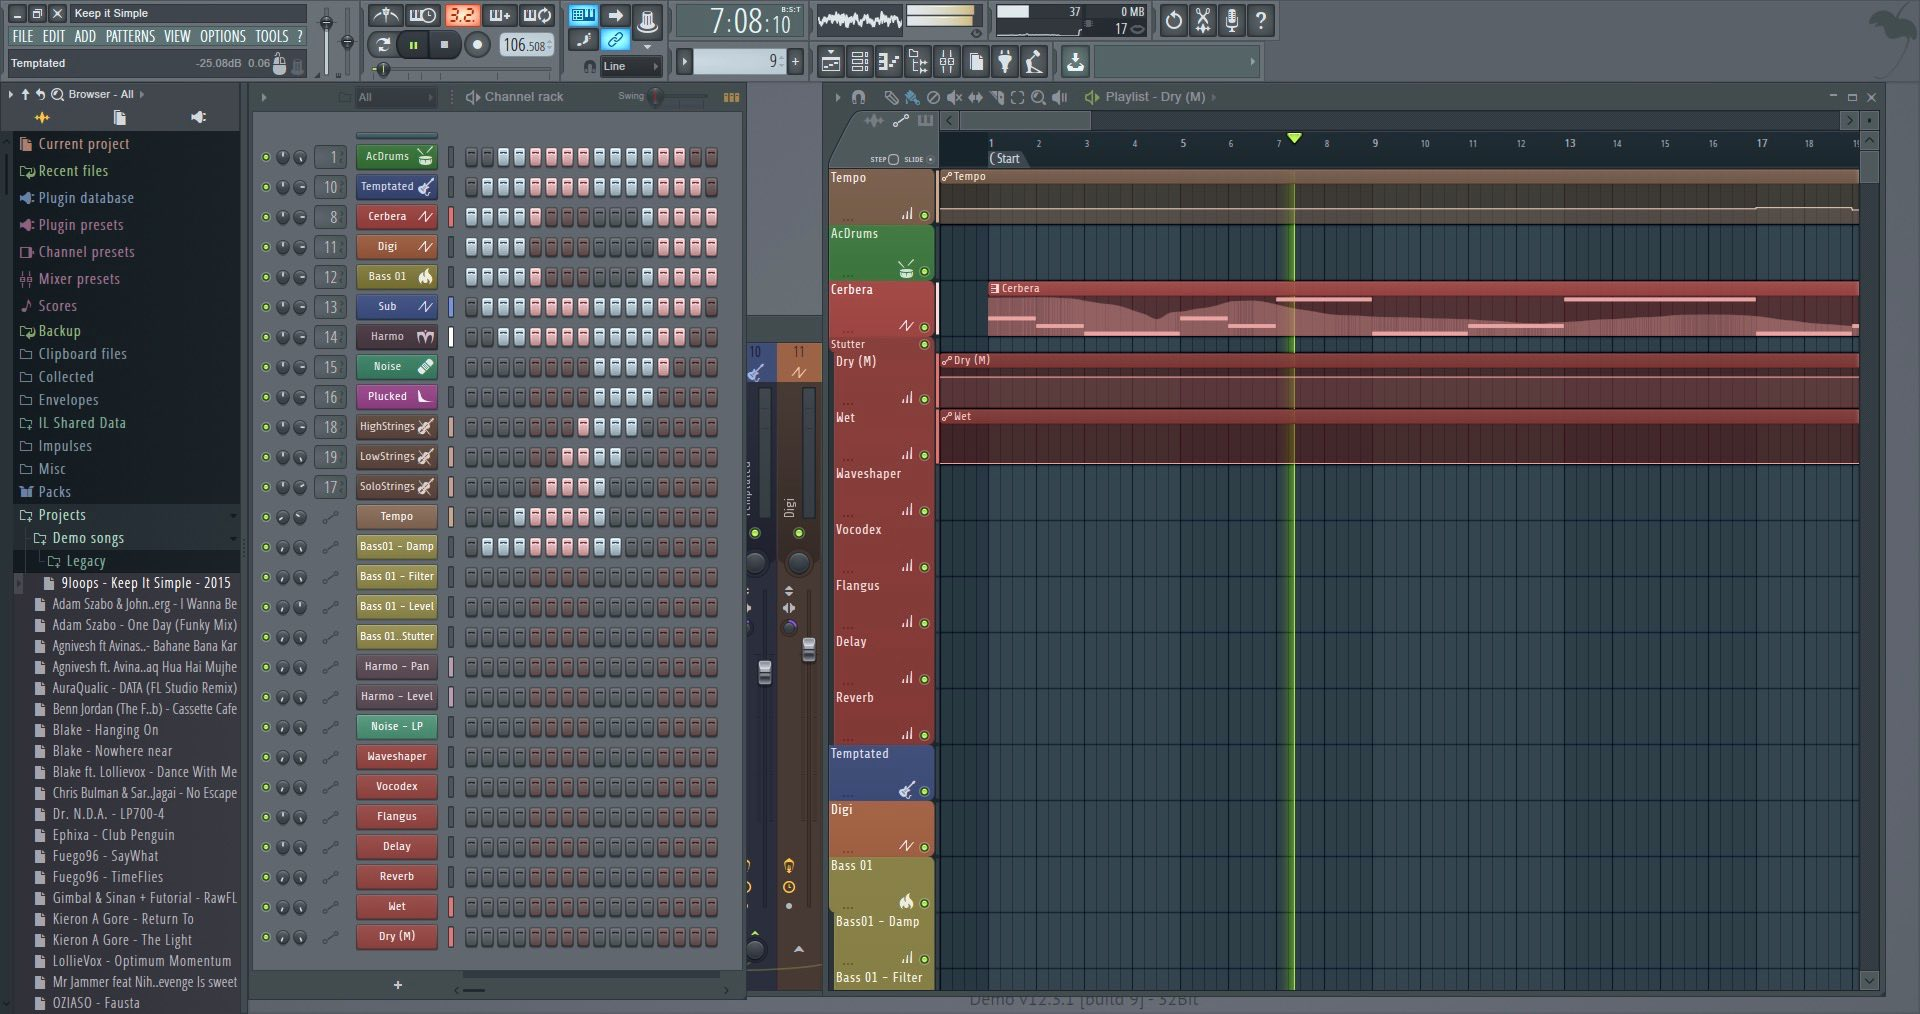 FL Studio 12 - The full complete guide you need